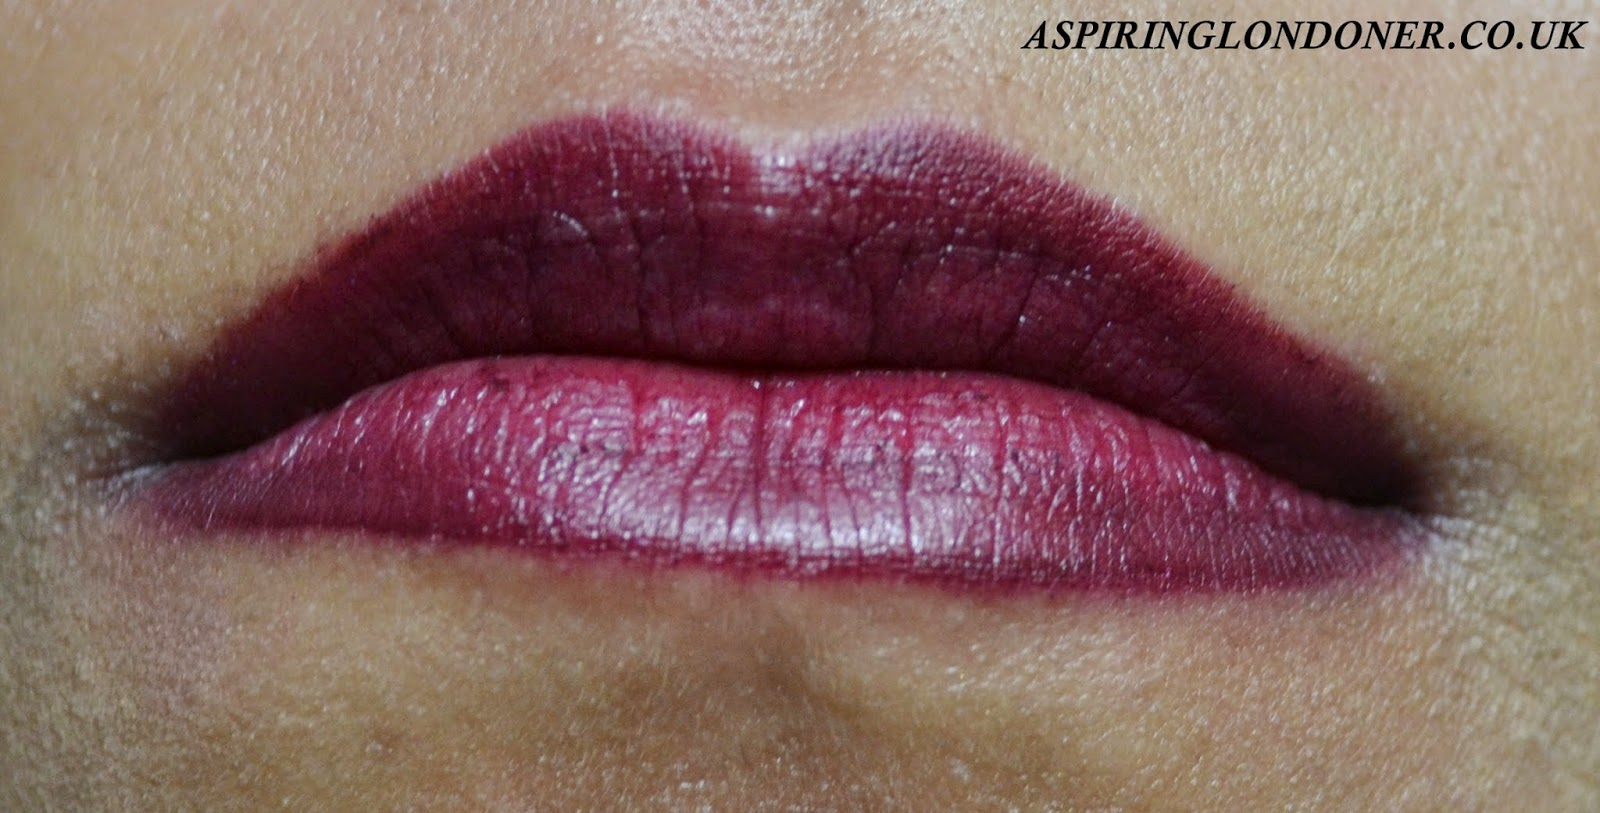 Kiko Smart Lip Pencin in 710 Rouge Noir & Clinique Chubby Stick in Voluptuous Violet Swatch - Aspiring Londoner